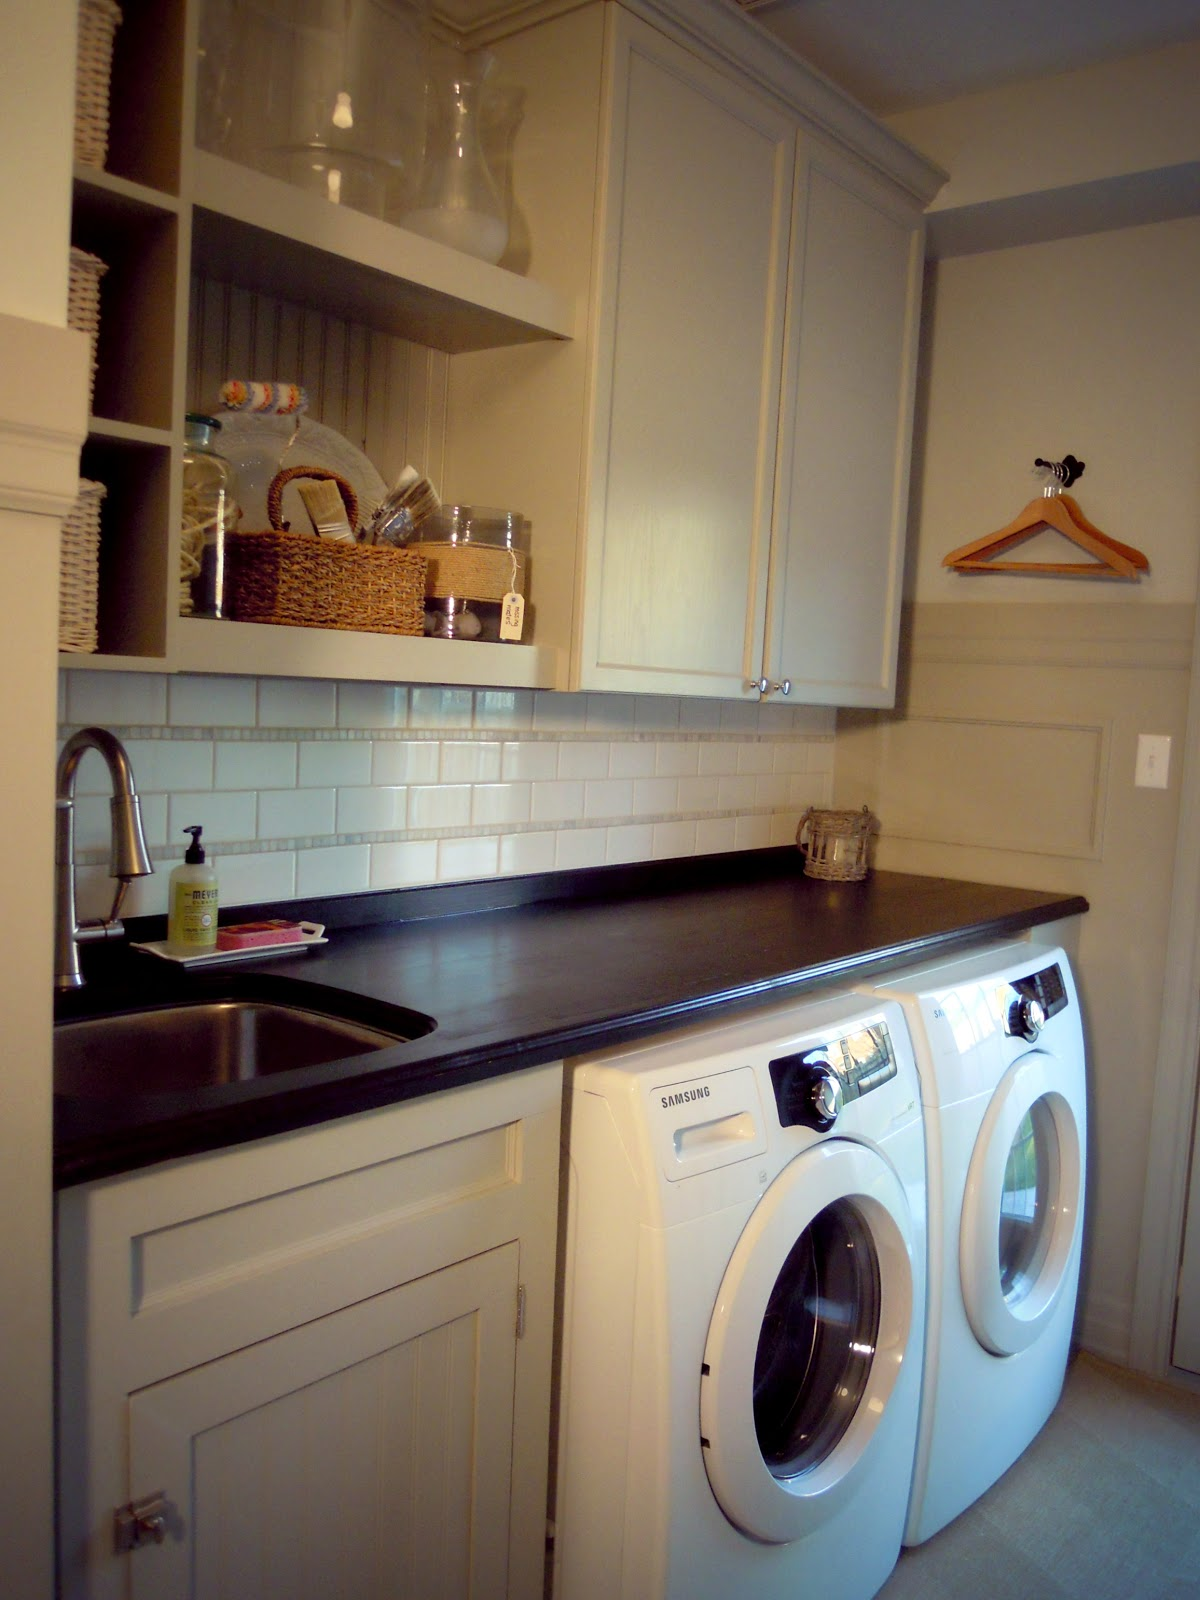 White Wood : Completed laundry room on Laundry Cabinet Ideas  id=90660